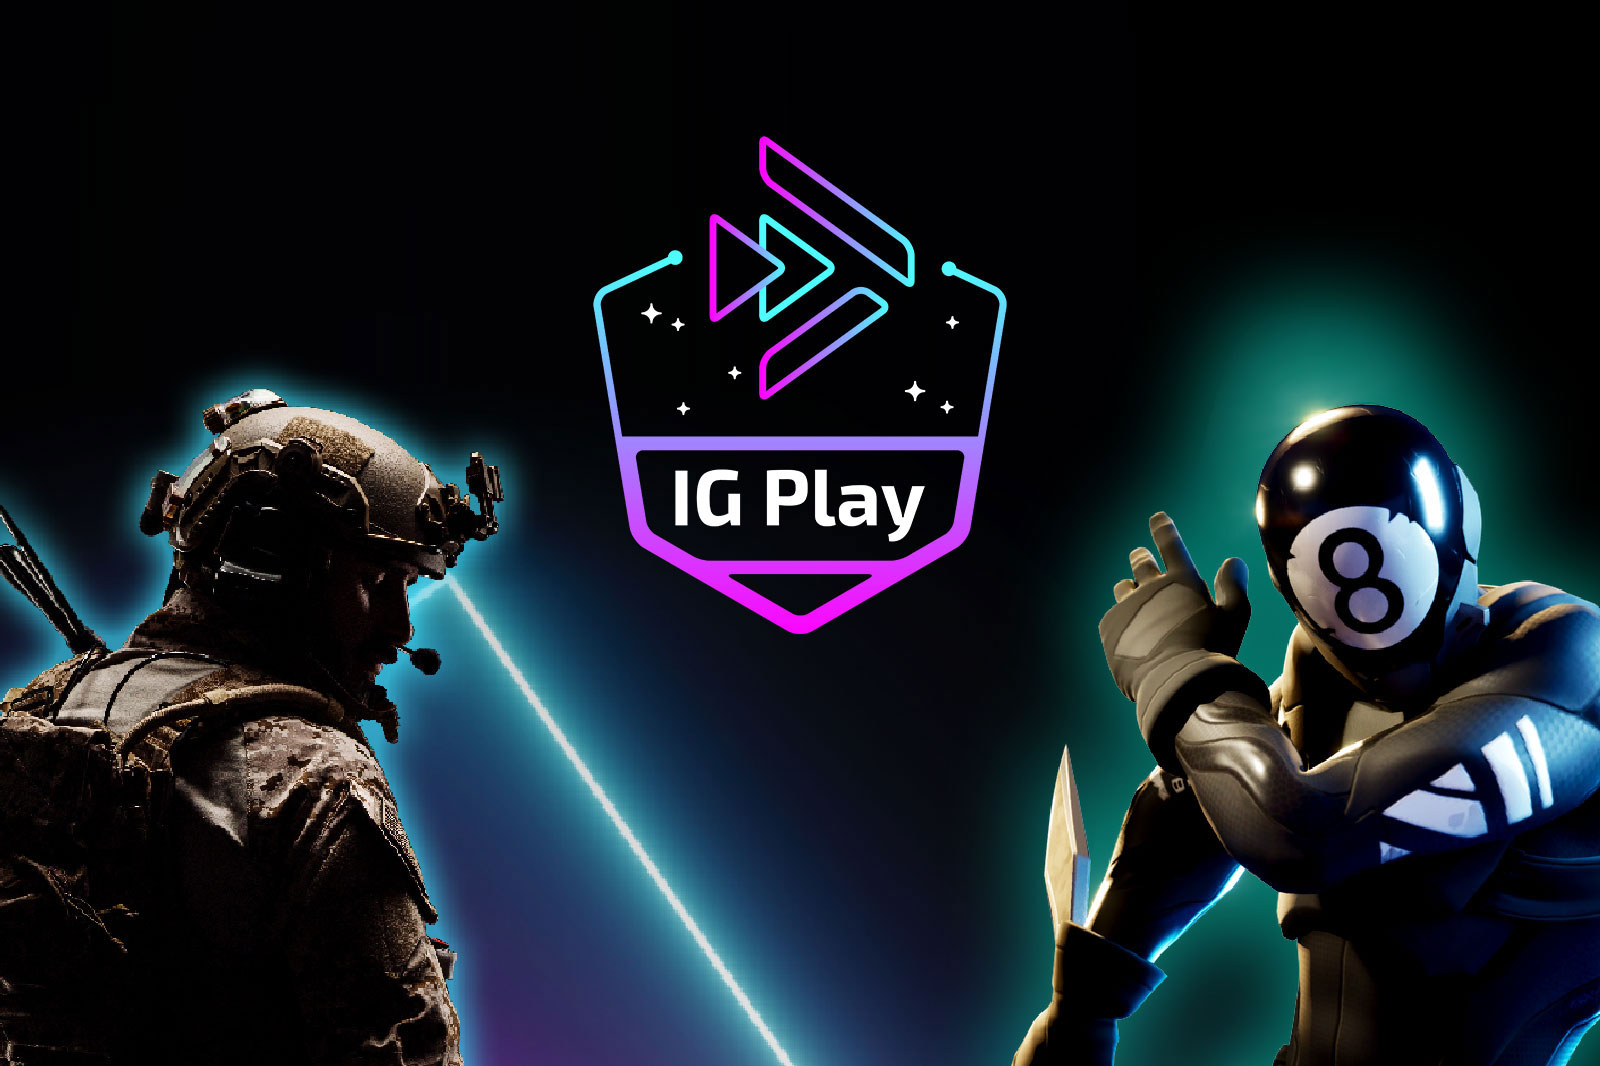 Fortnite and Call of Duty coming to IGPlay soon!